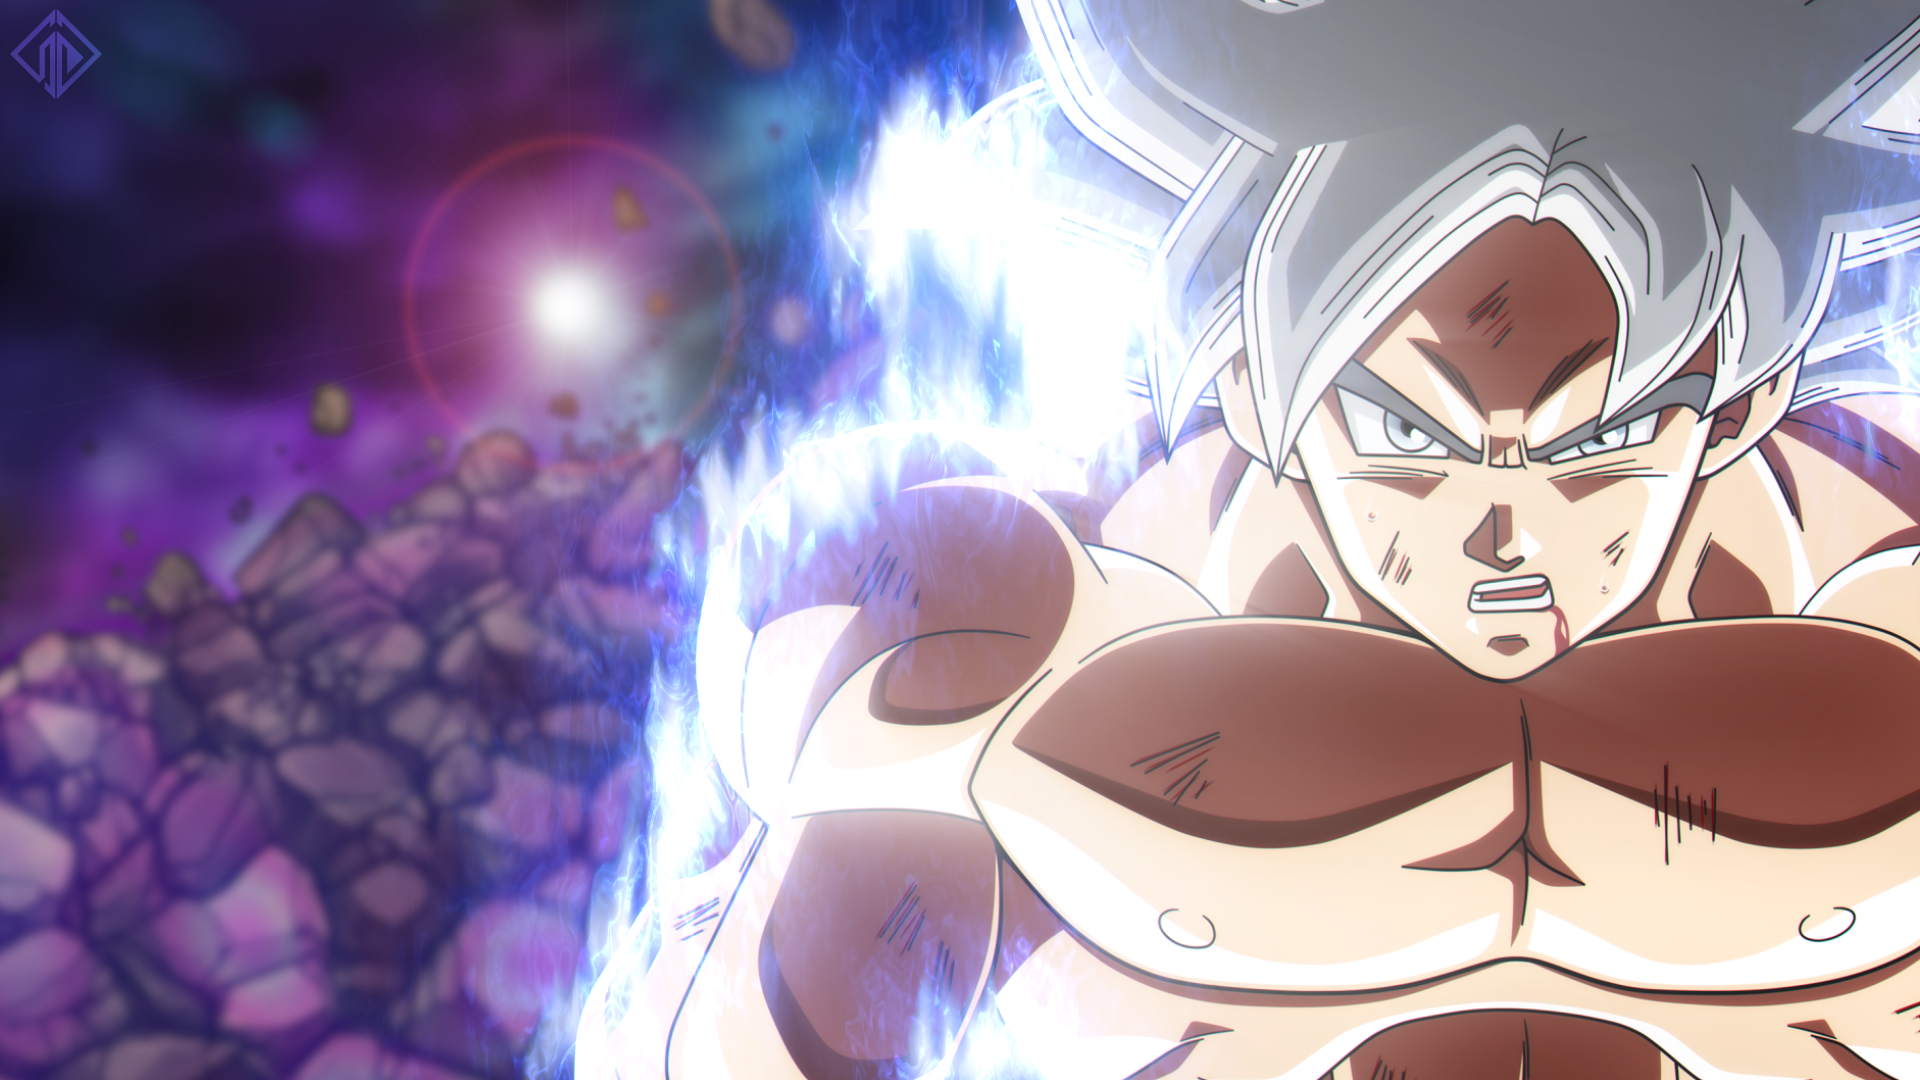 Goku Super Saiyan Silver Form Mastered UI HD Wallpaper ...